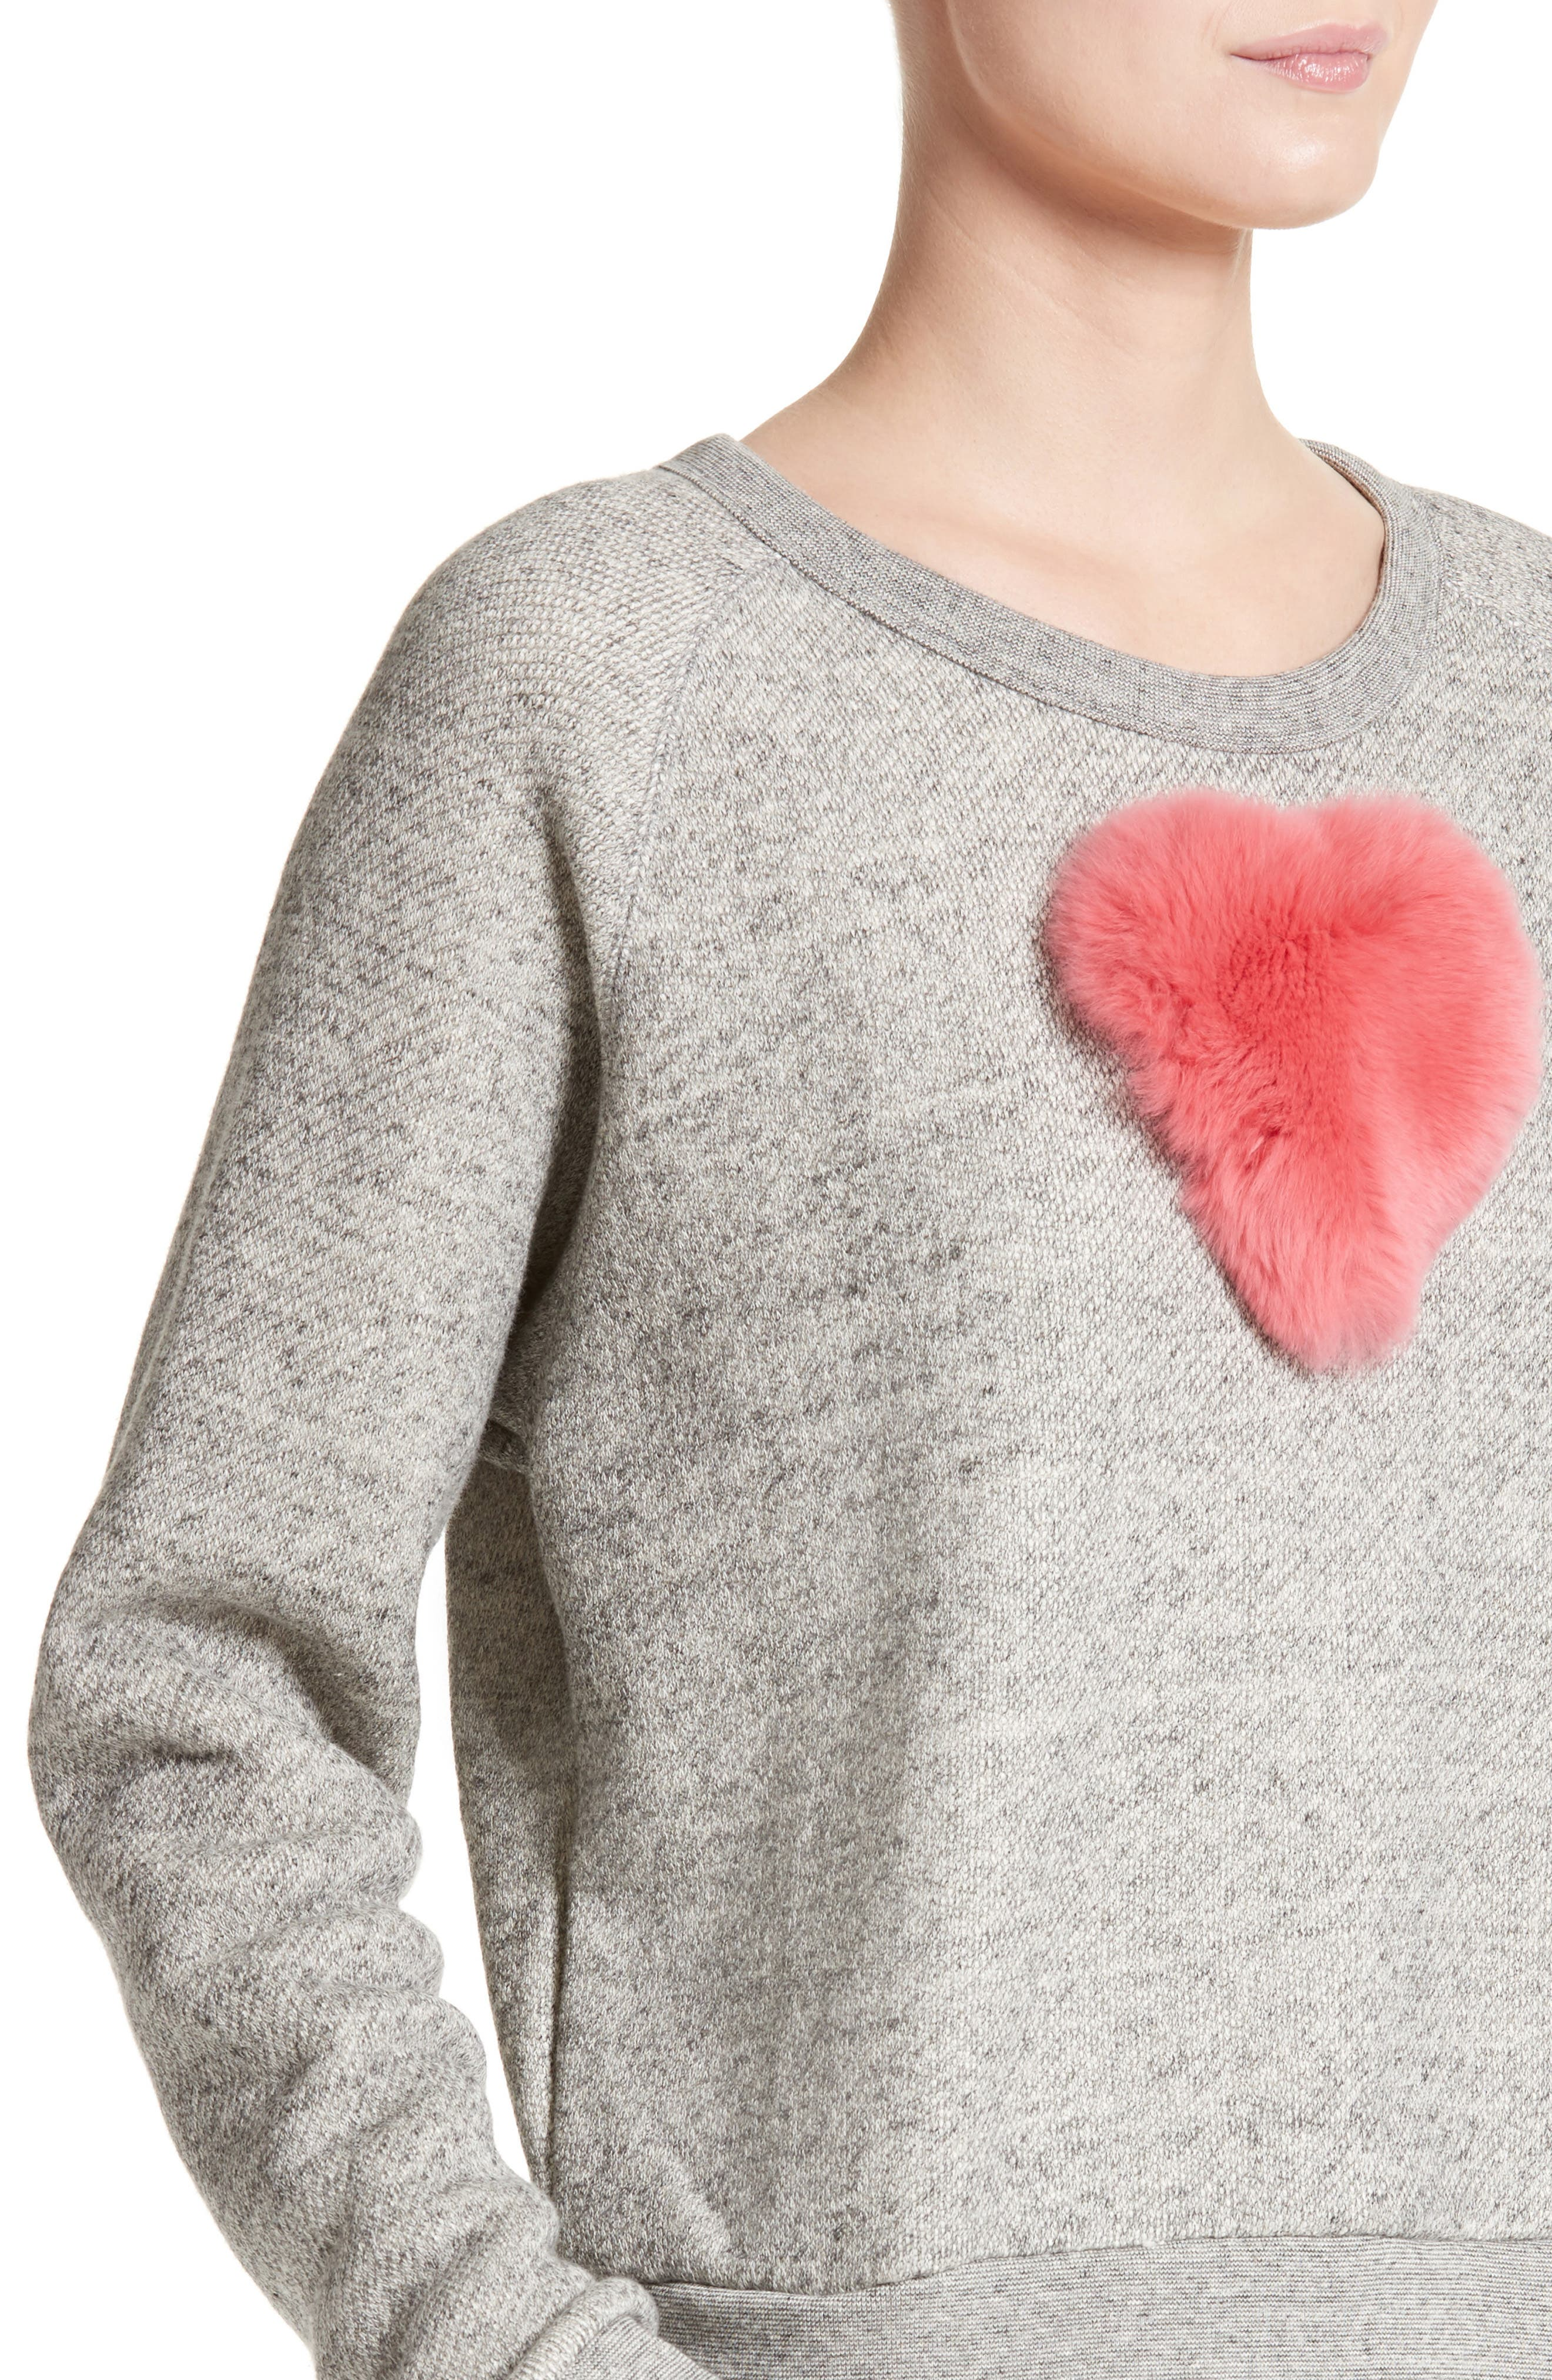 One Heart Pullover,                             Alternate thumbnail 6, color,                             Charcoal/Red